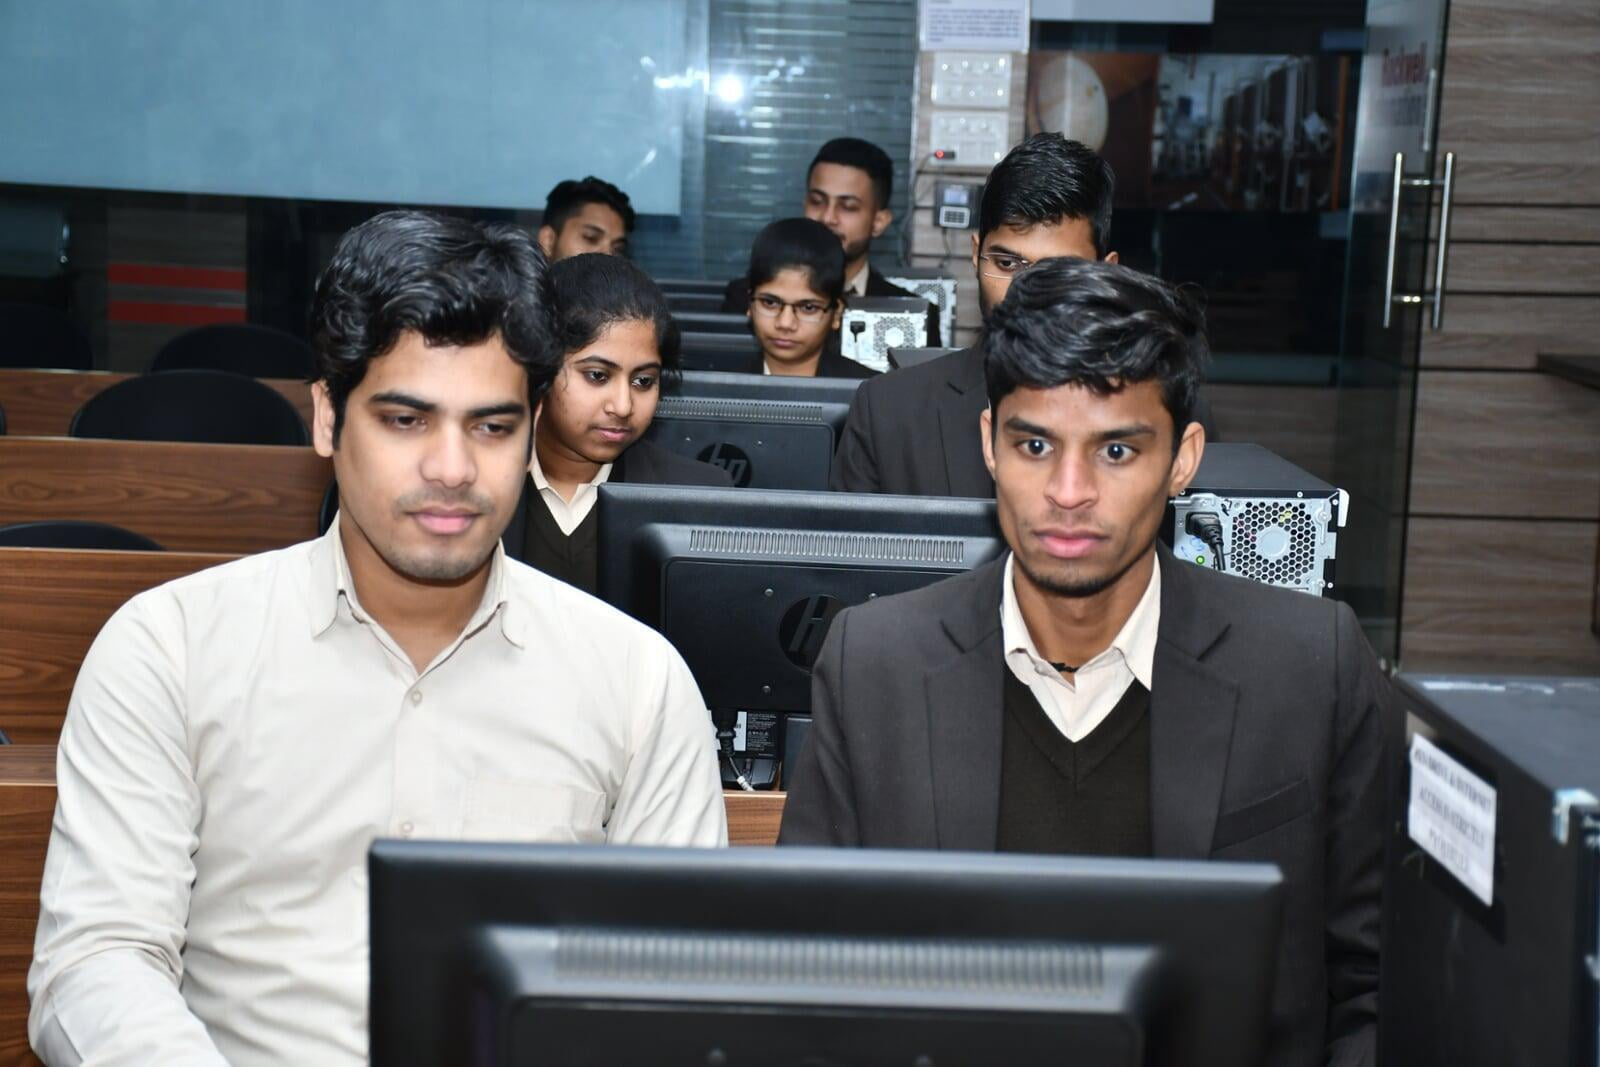 R Systems Lab 1 with students